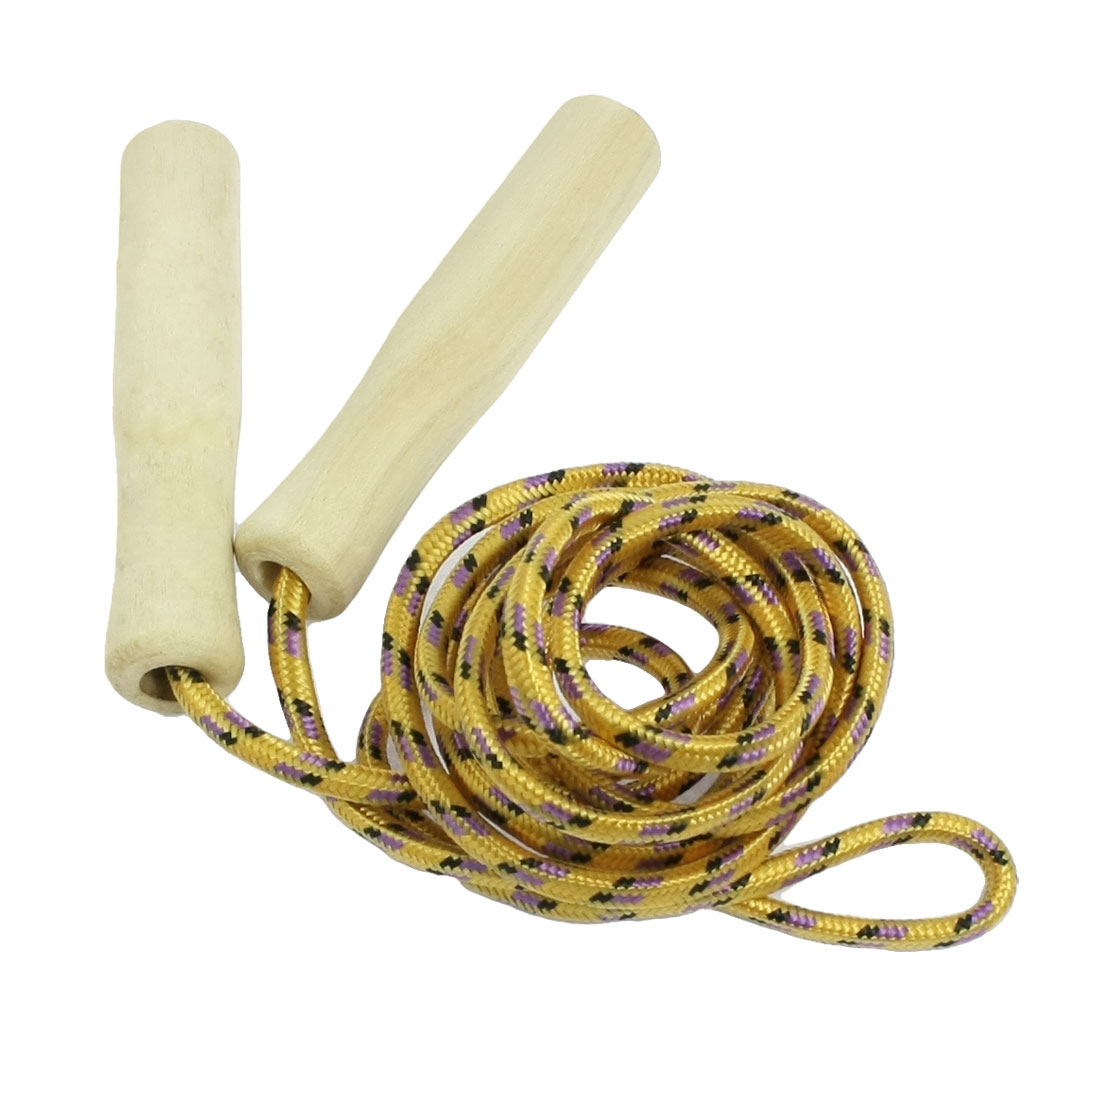 Sports Wooden Handle 2.3M Skipping Jump Rope Yellow Purple Black